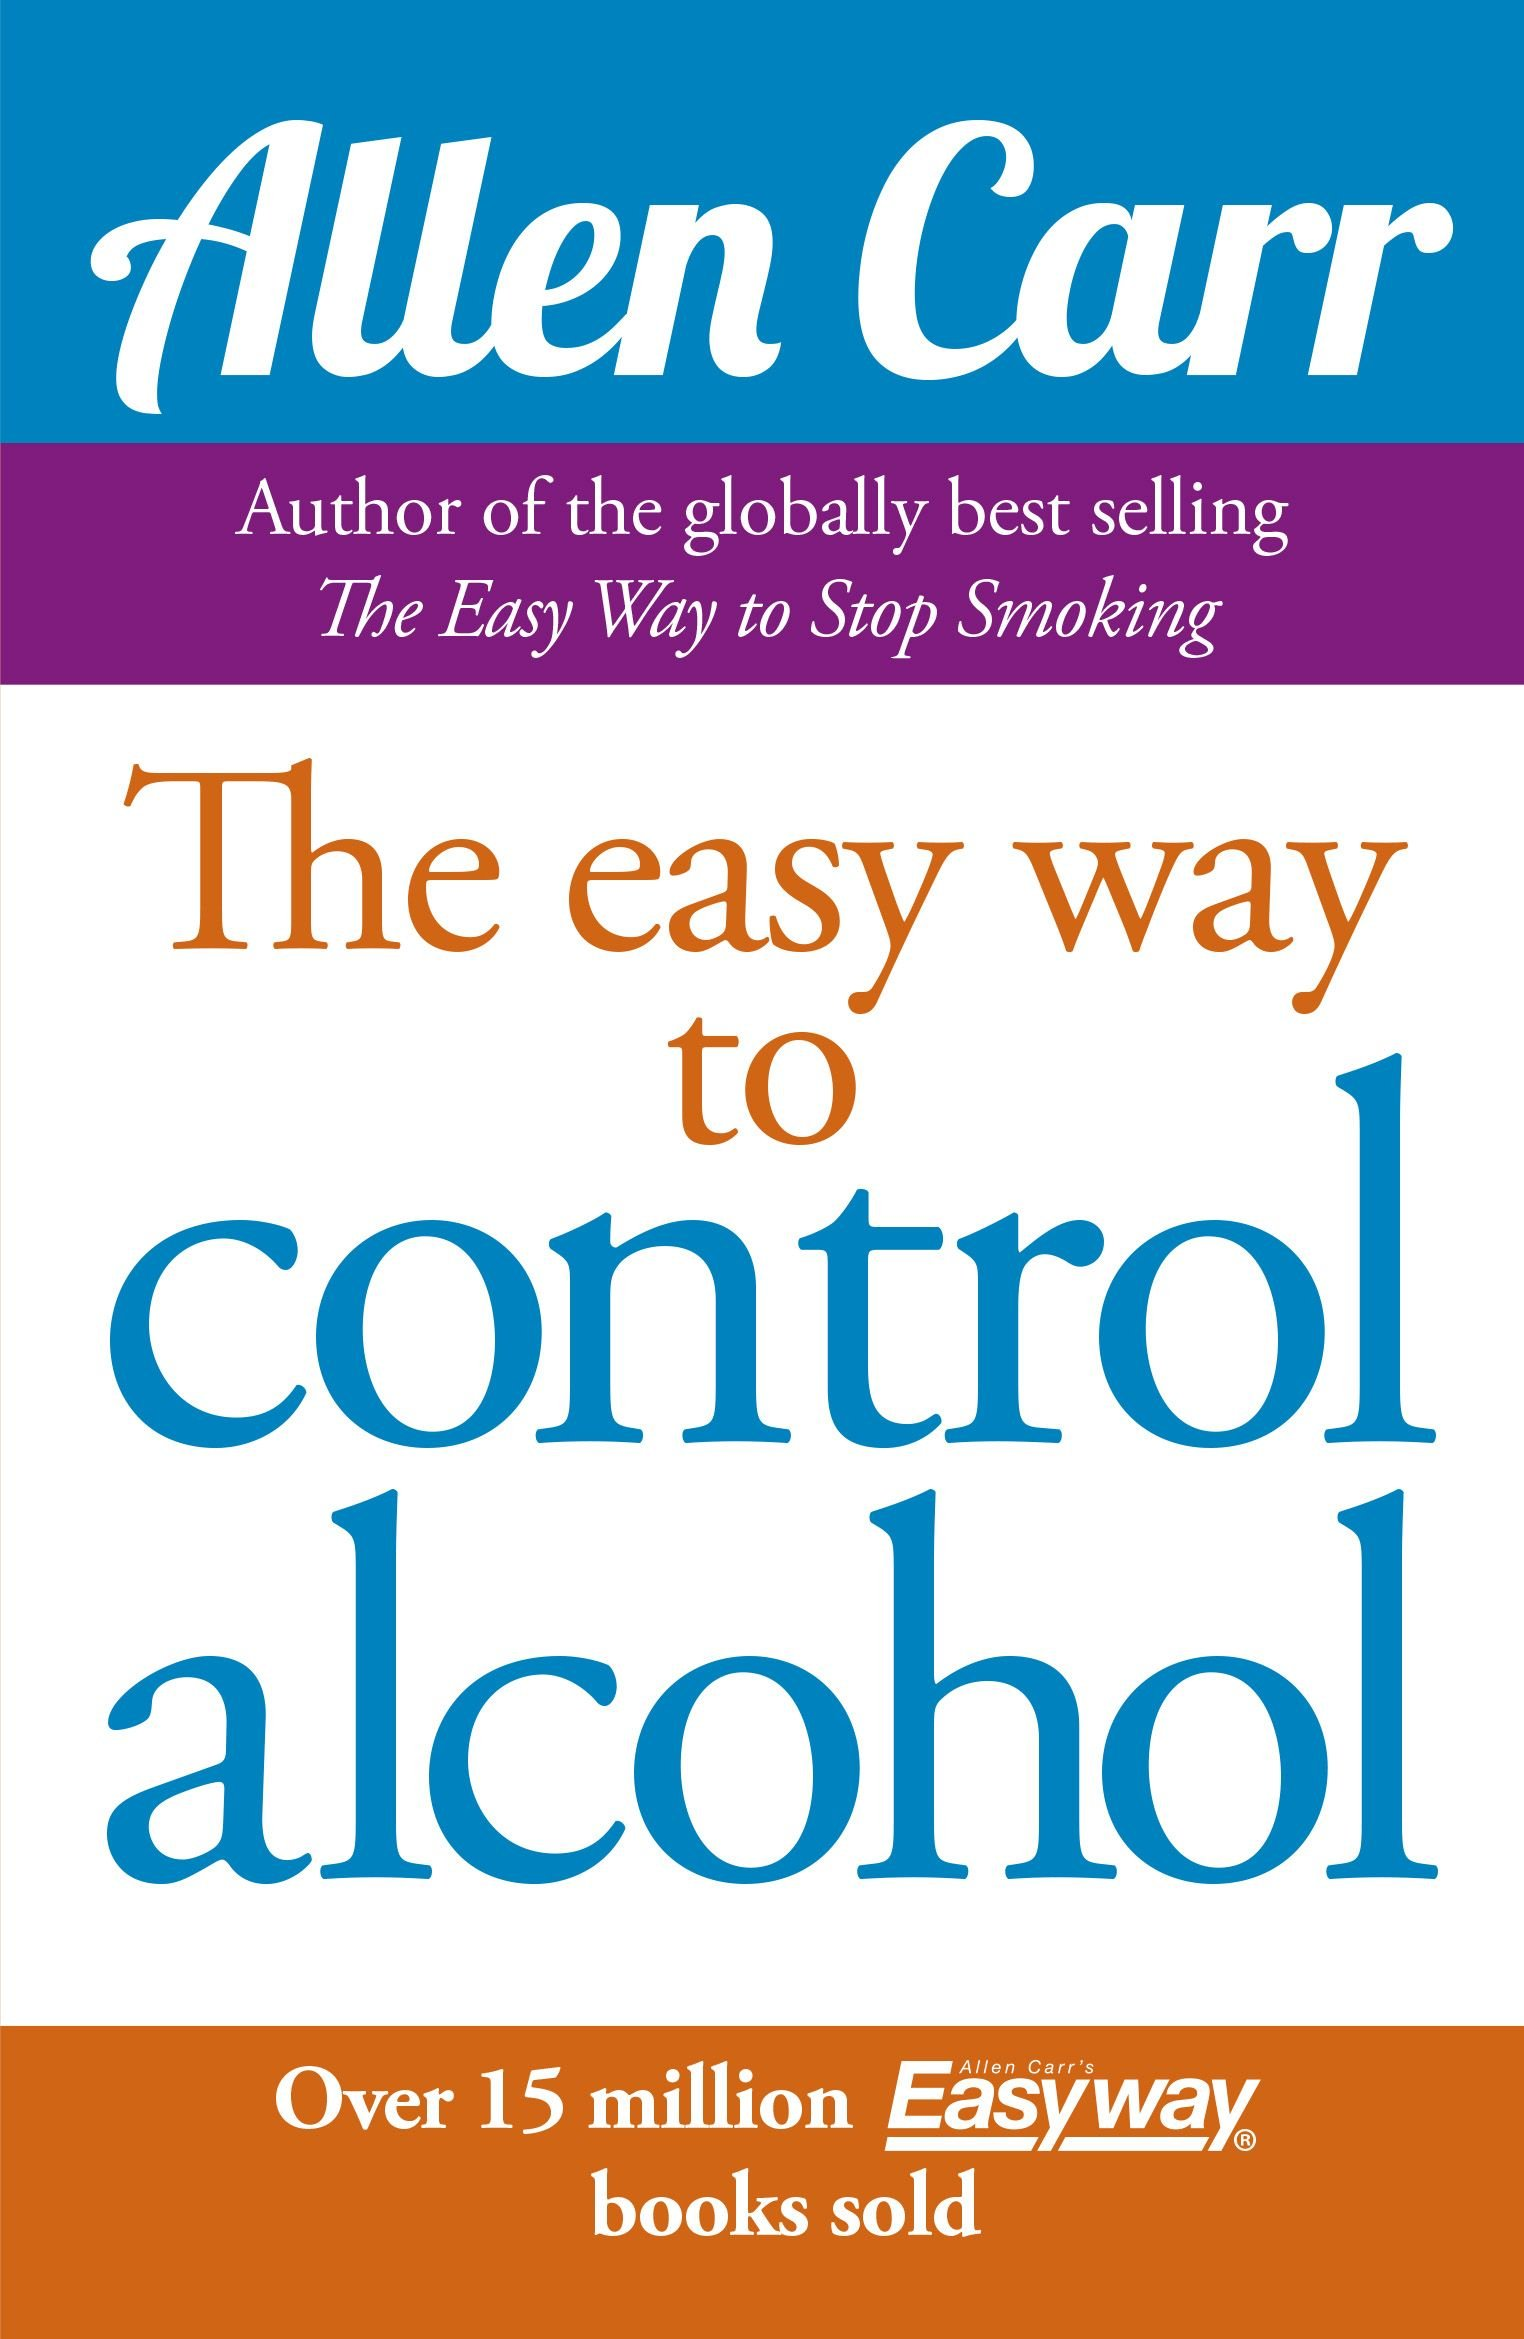 Allen Carrs Easyway Control Alcohol product image